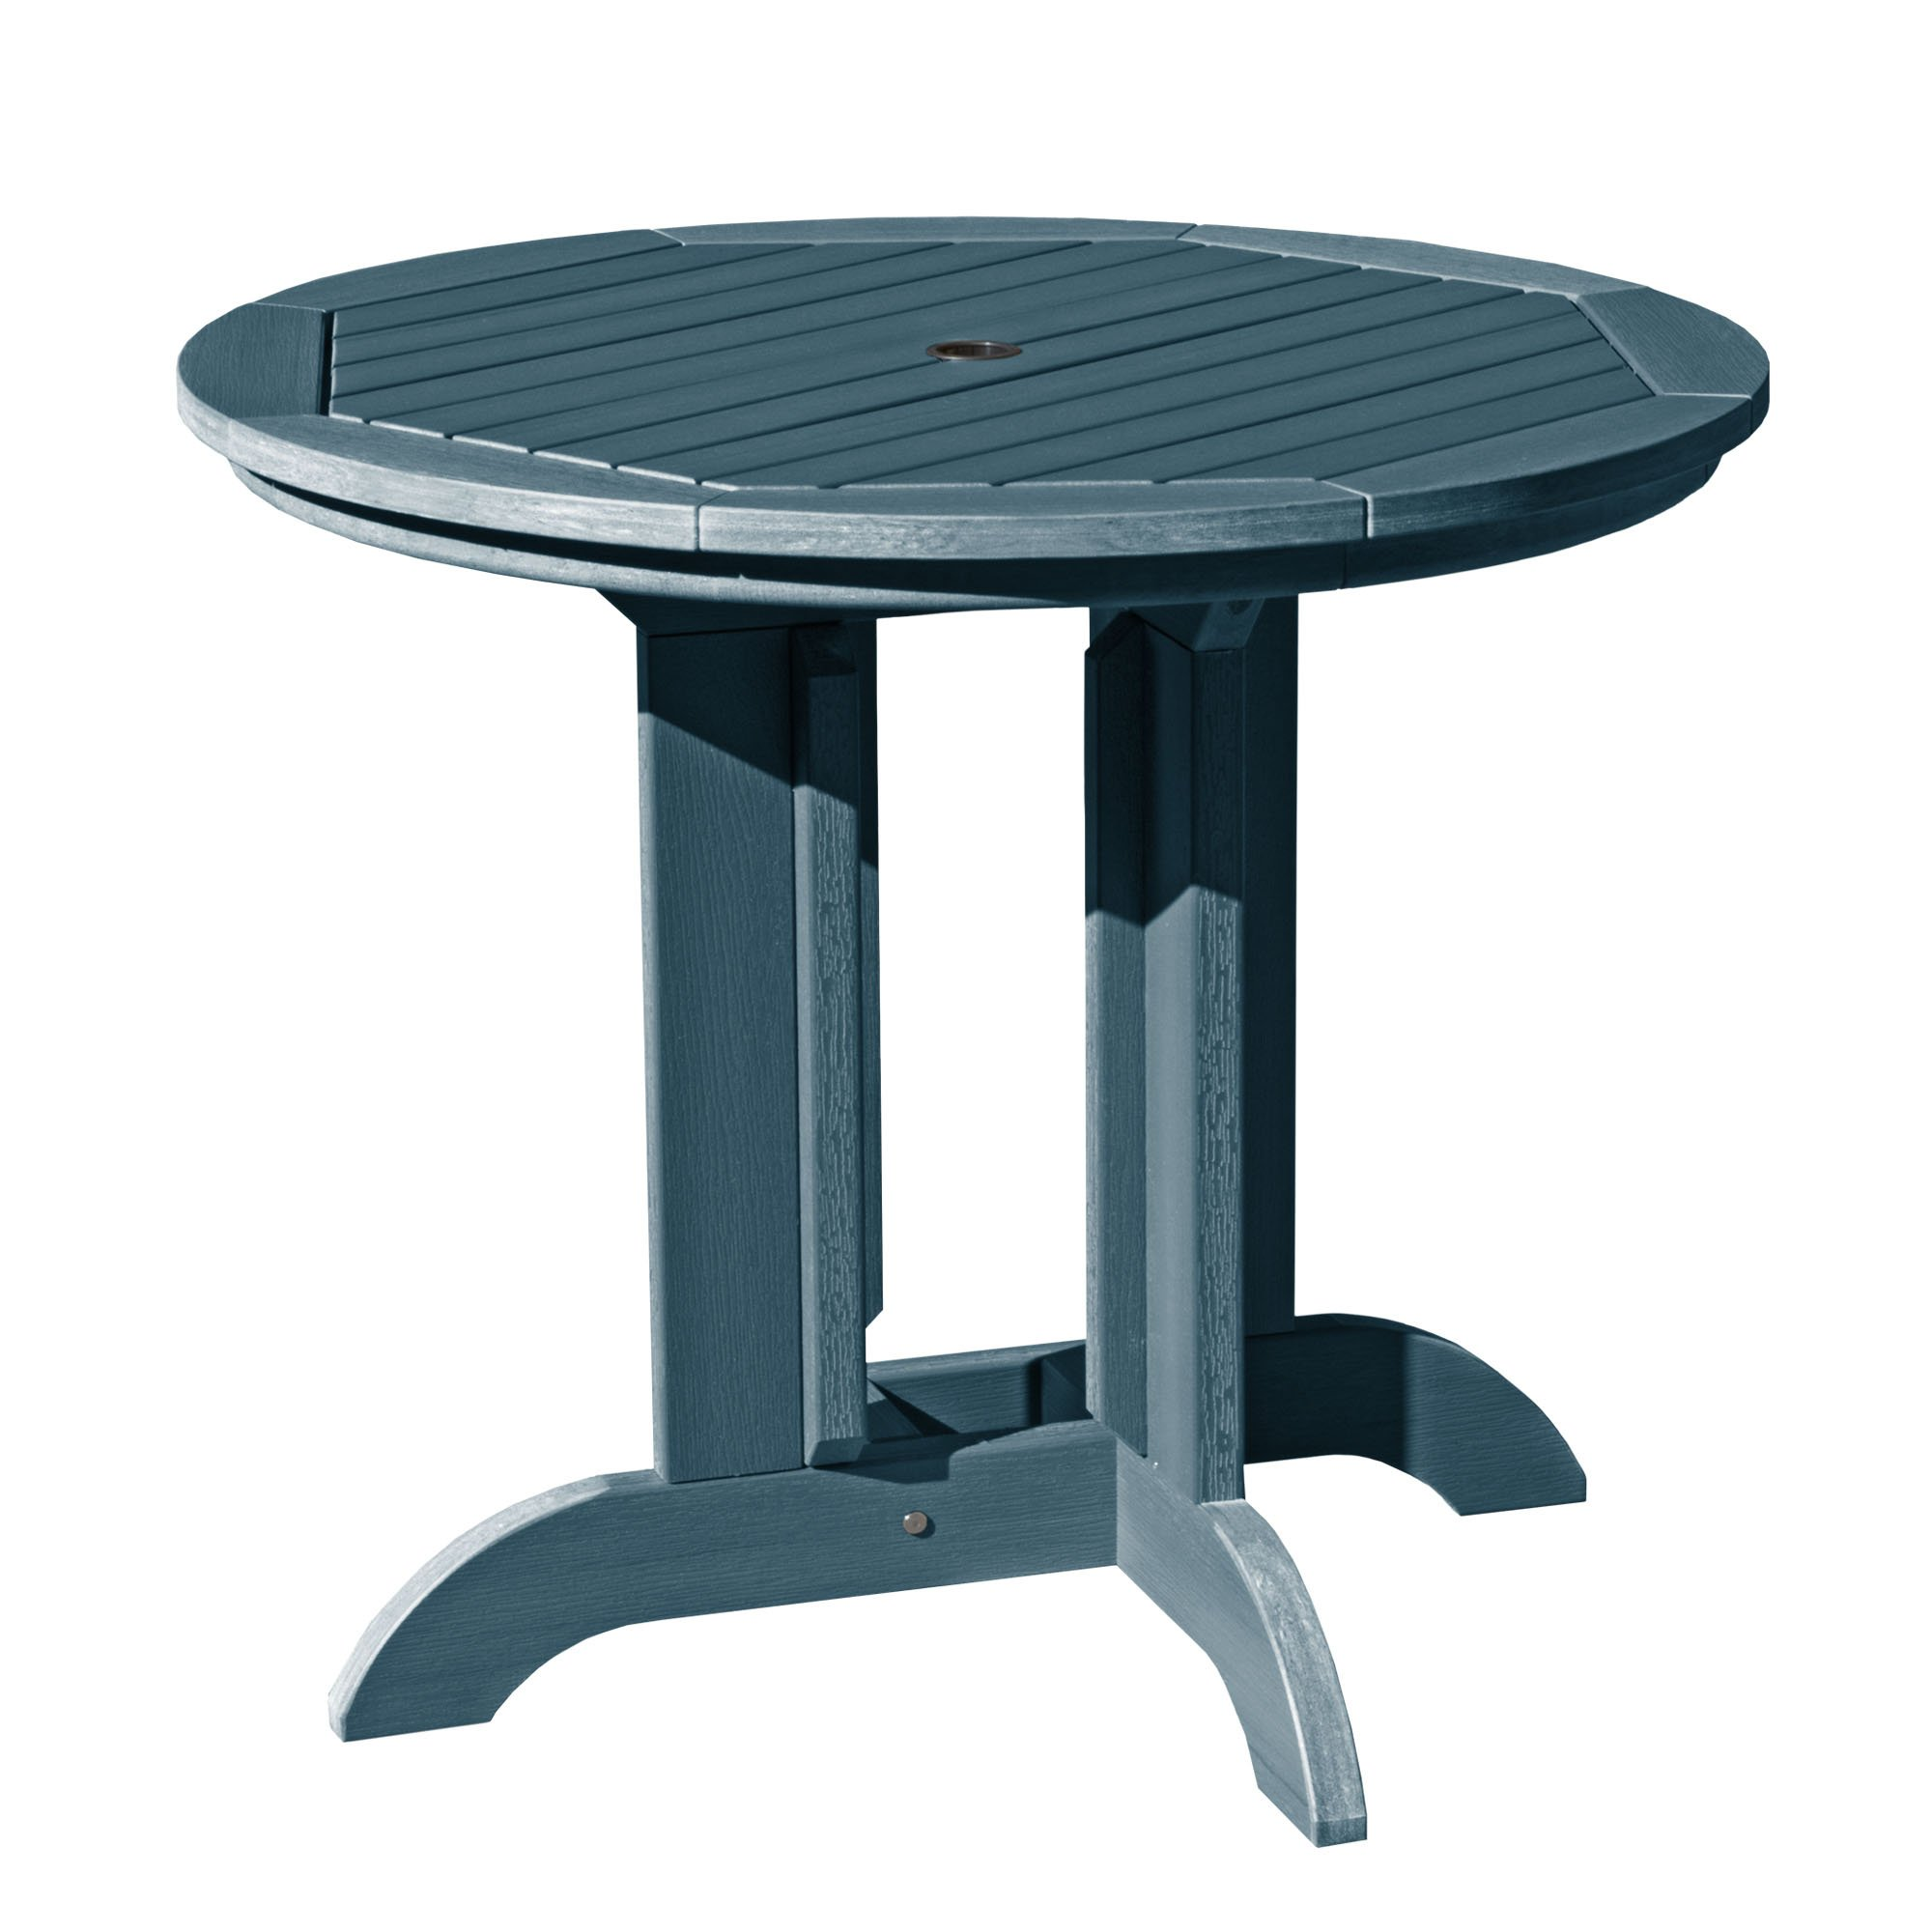 """Highwood AD-DRT36-NBE Adirondack Round Height Dining Table, 36"""", Nantucket Blue"""